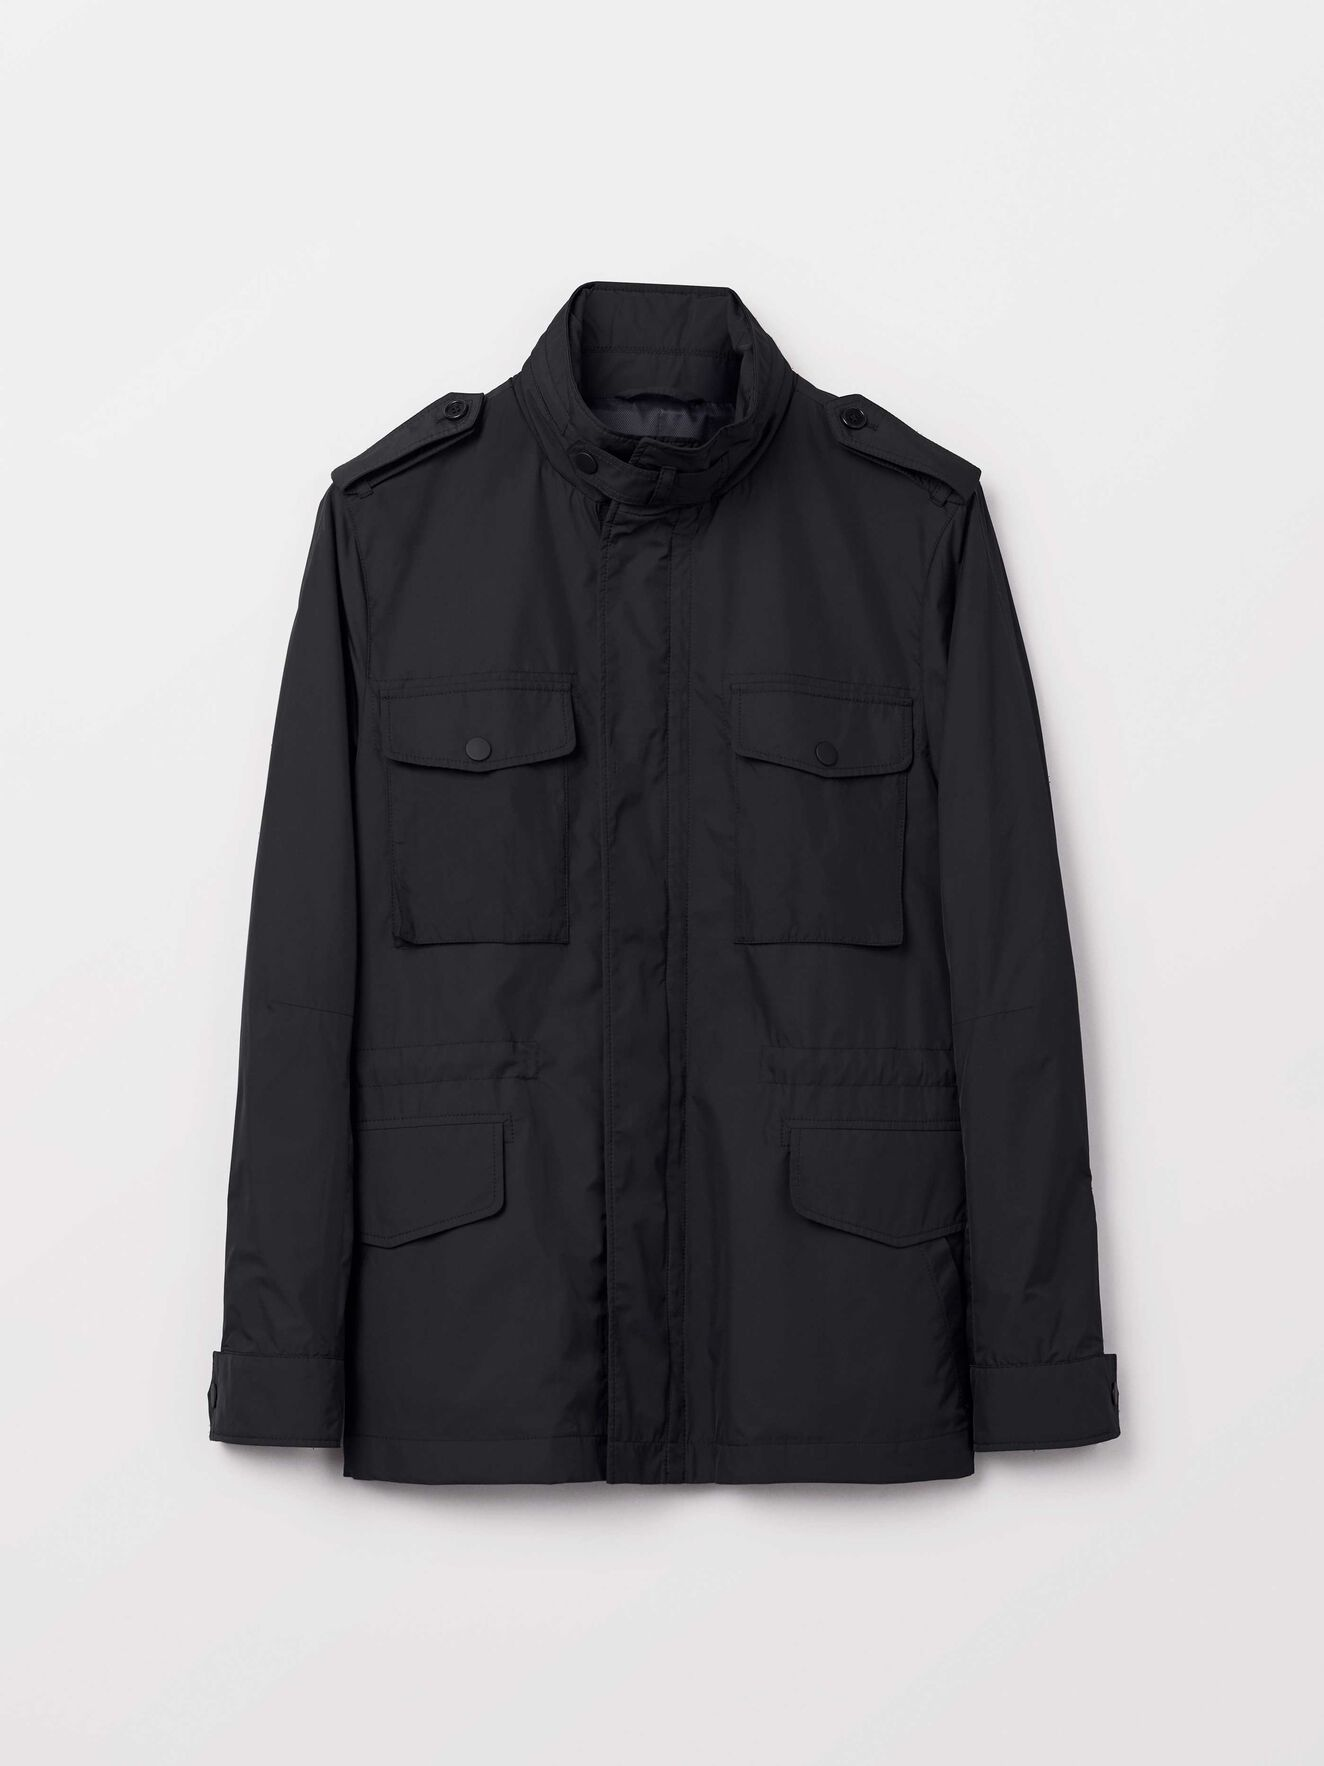 Ossiane Jacket in Black from Tiger of Sweden